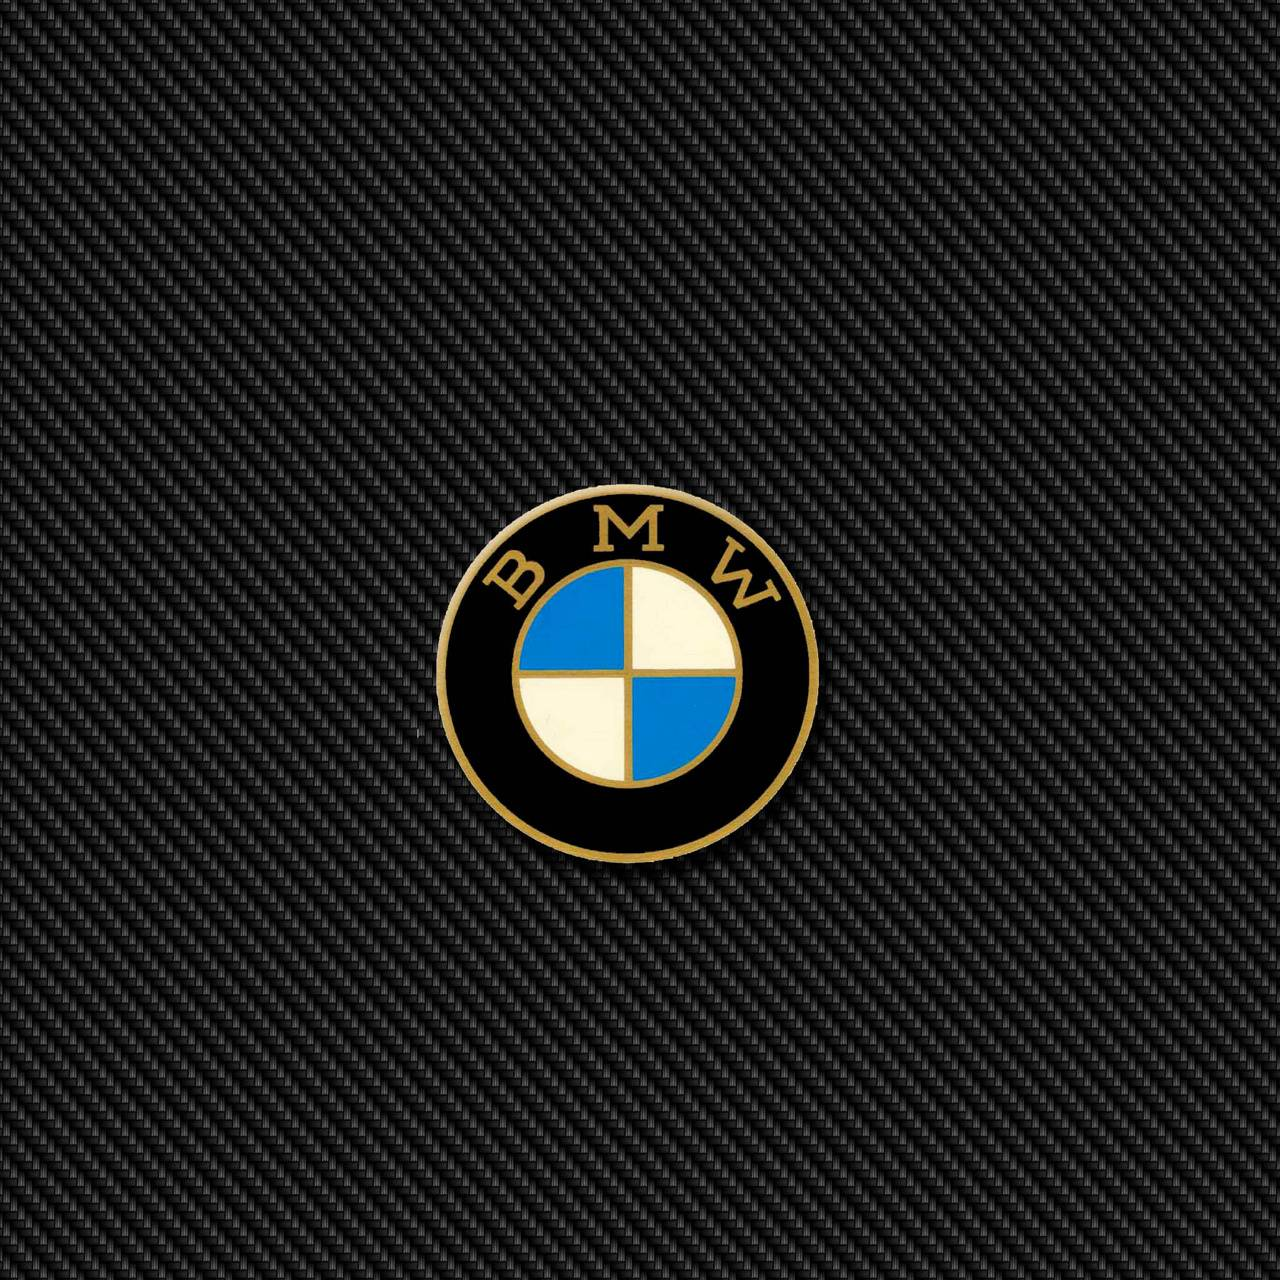 Bmw Vintage Carbon Wallpaper By Bruceiras 80 Free On Zedge